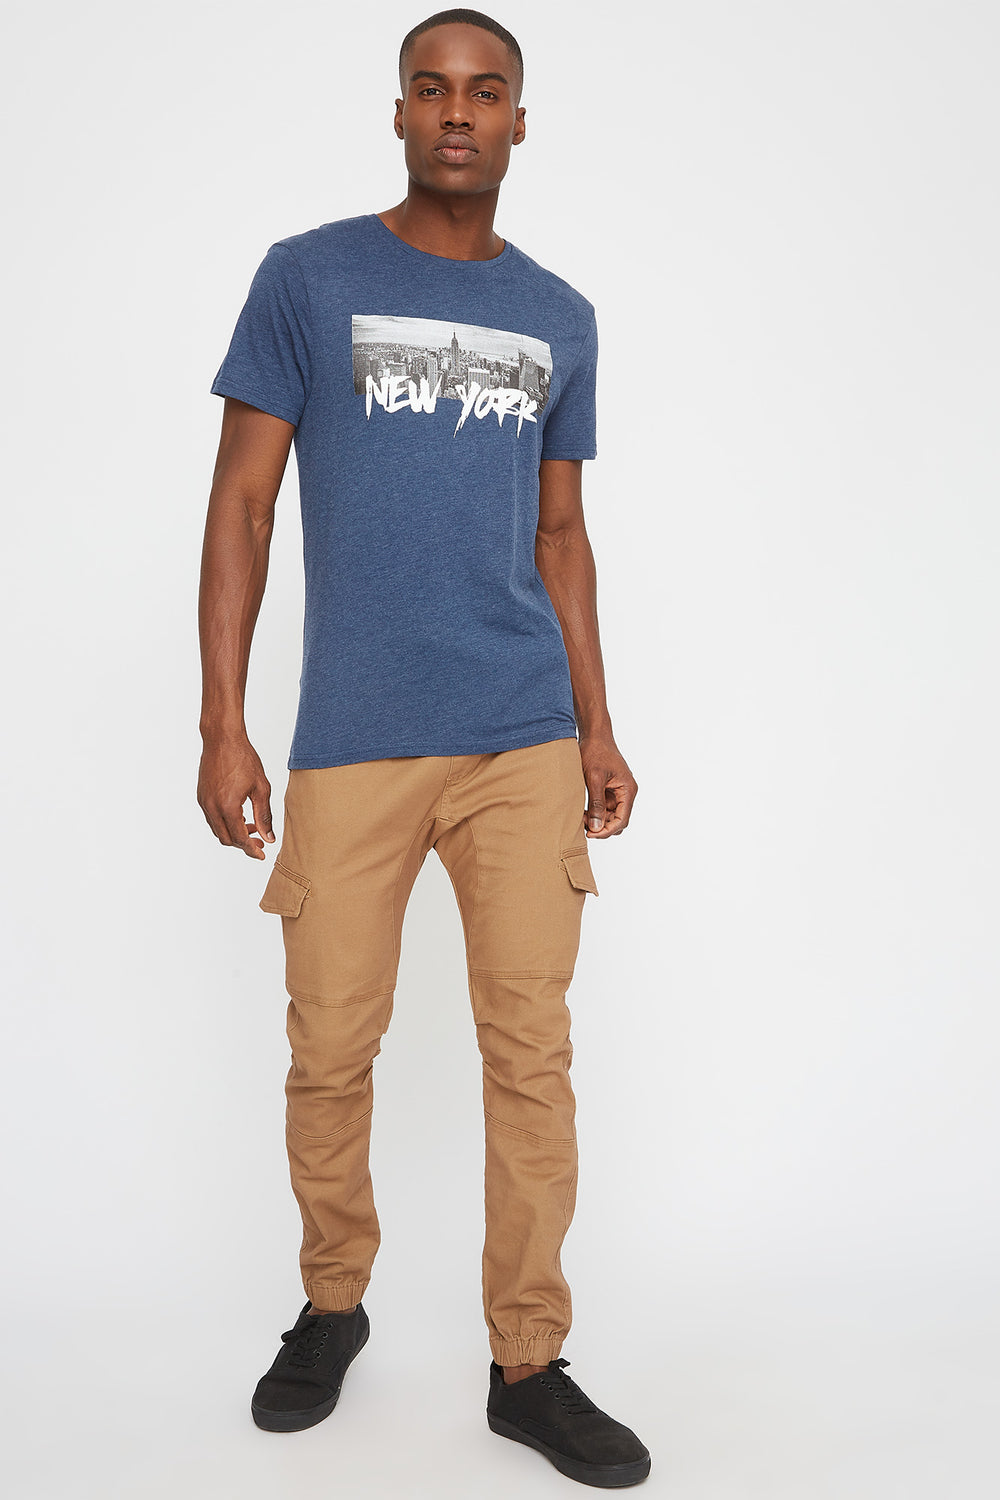 New York Graphic T-Shirt Denim Blue